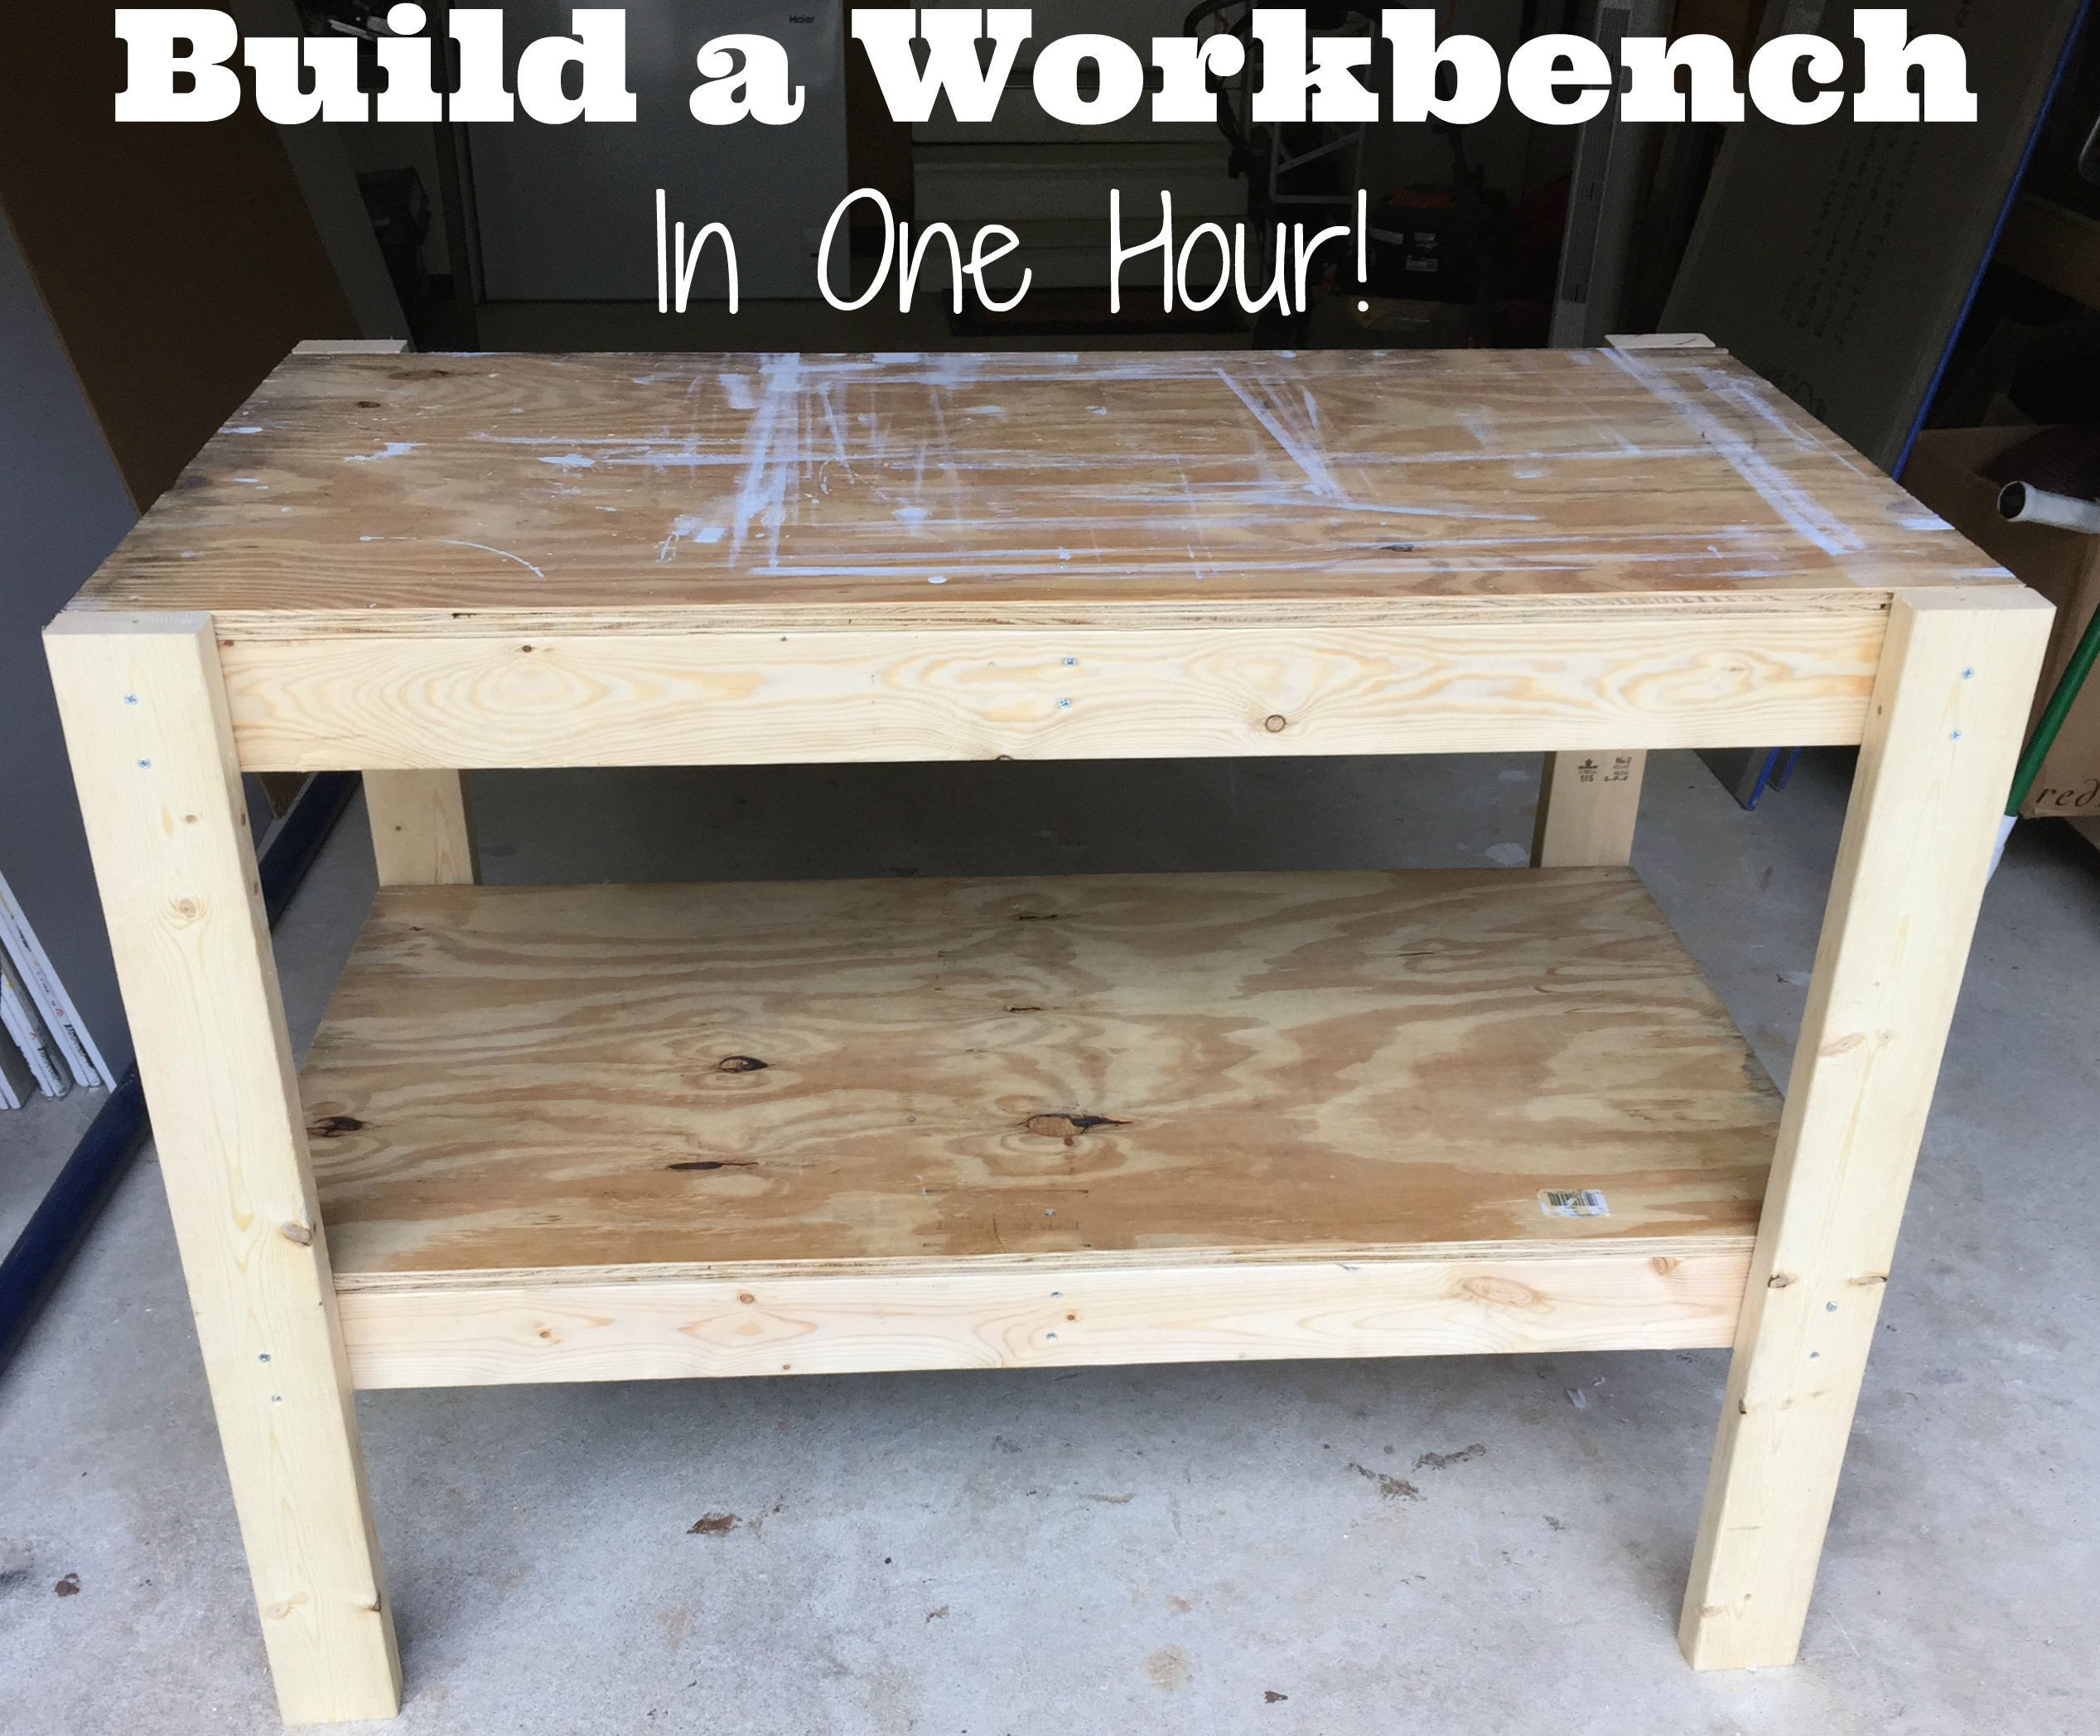 Workbench Plans DIY  DIY Workbench with free plans and cut list from the Craft